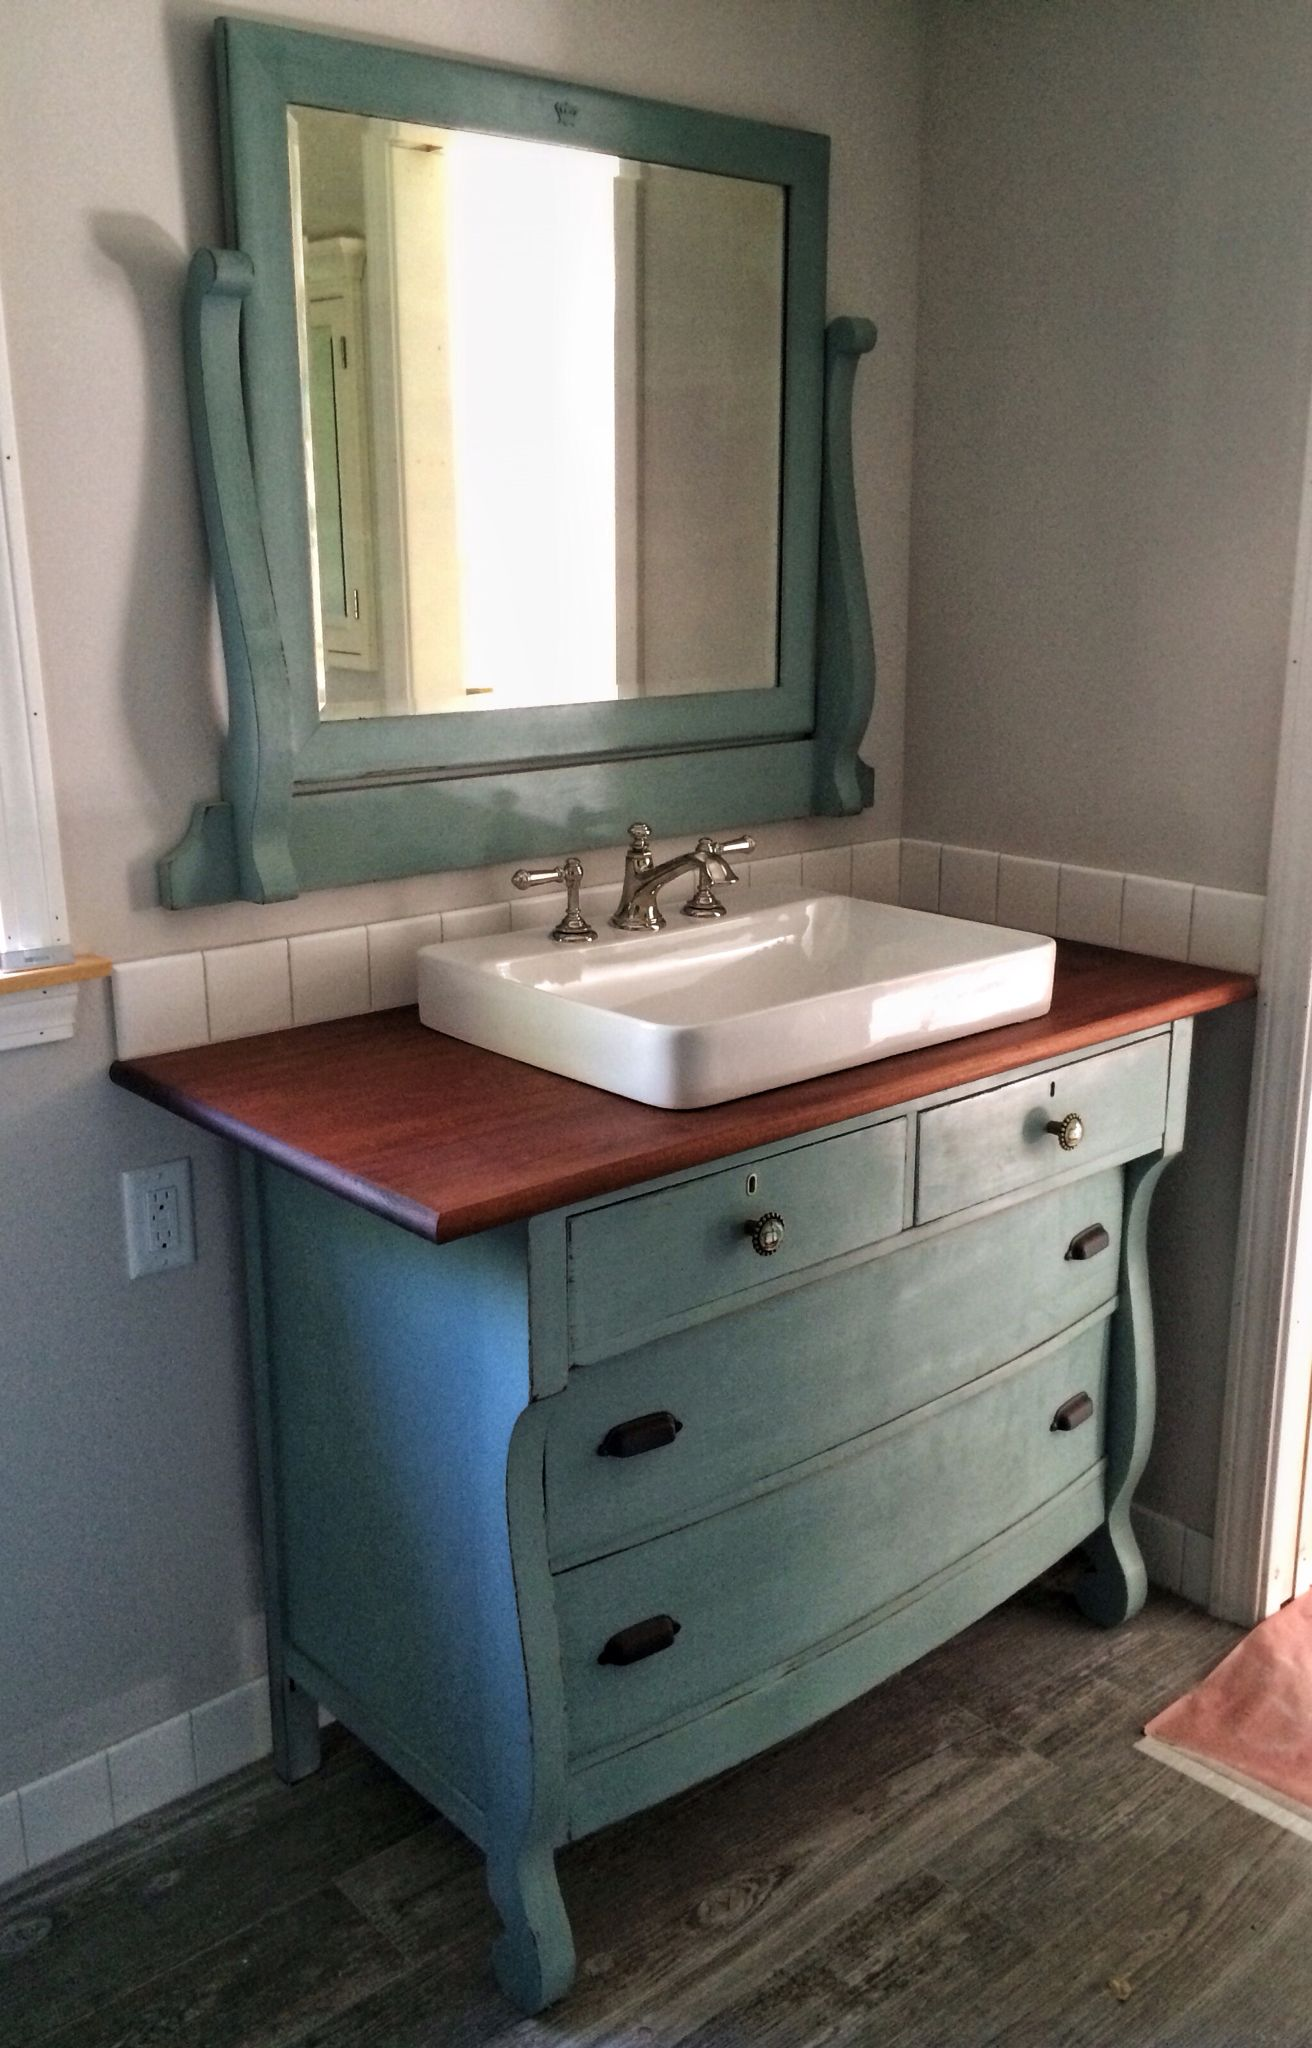 Exceptional I Just Repurposed An Old Dresser To Use As A Vanity In Our New Bathroom.